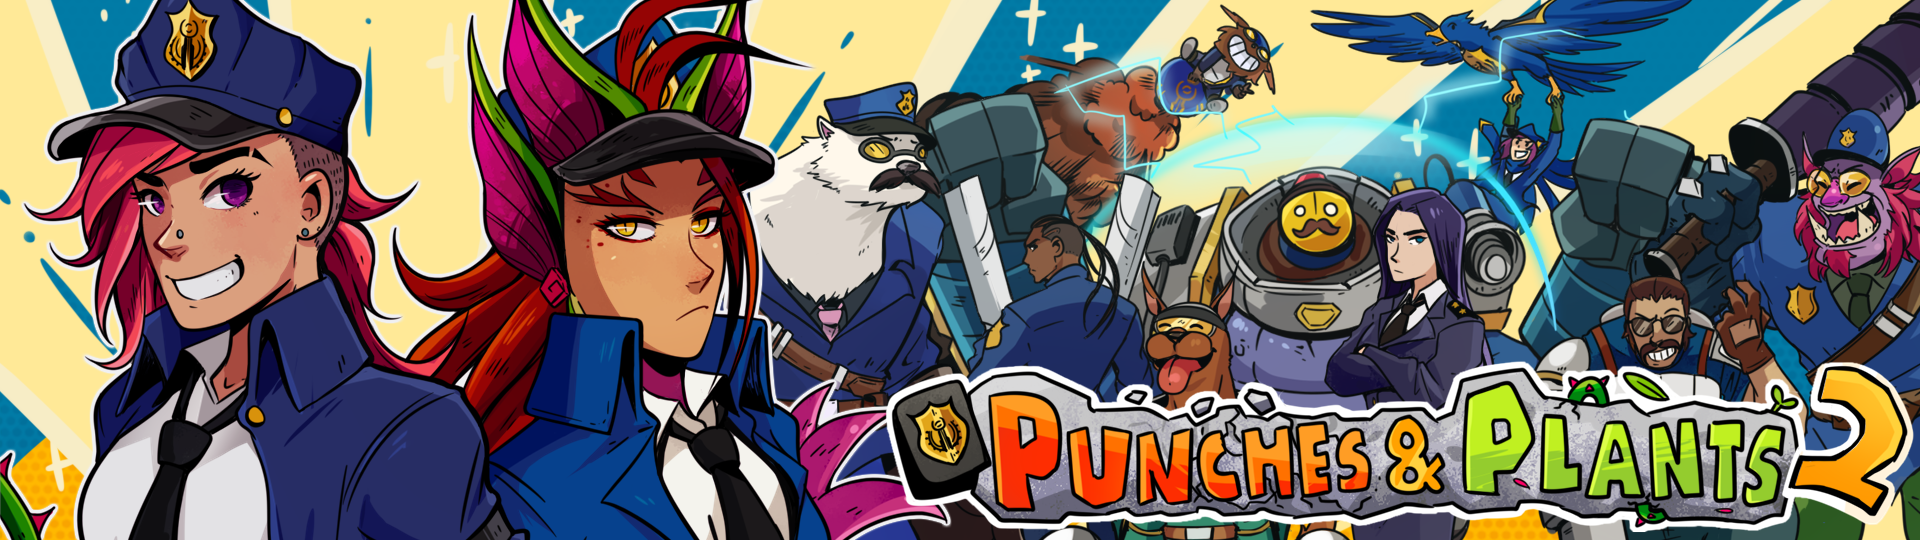 Punches and Plants cover 02.png